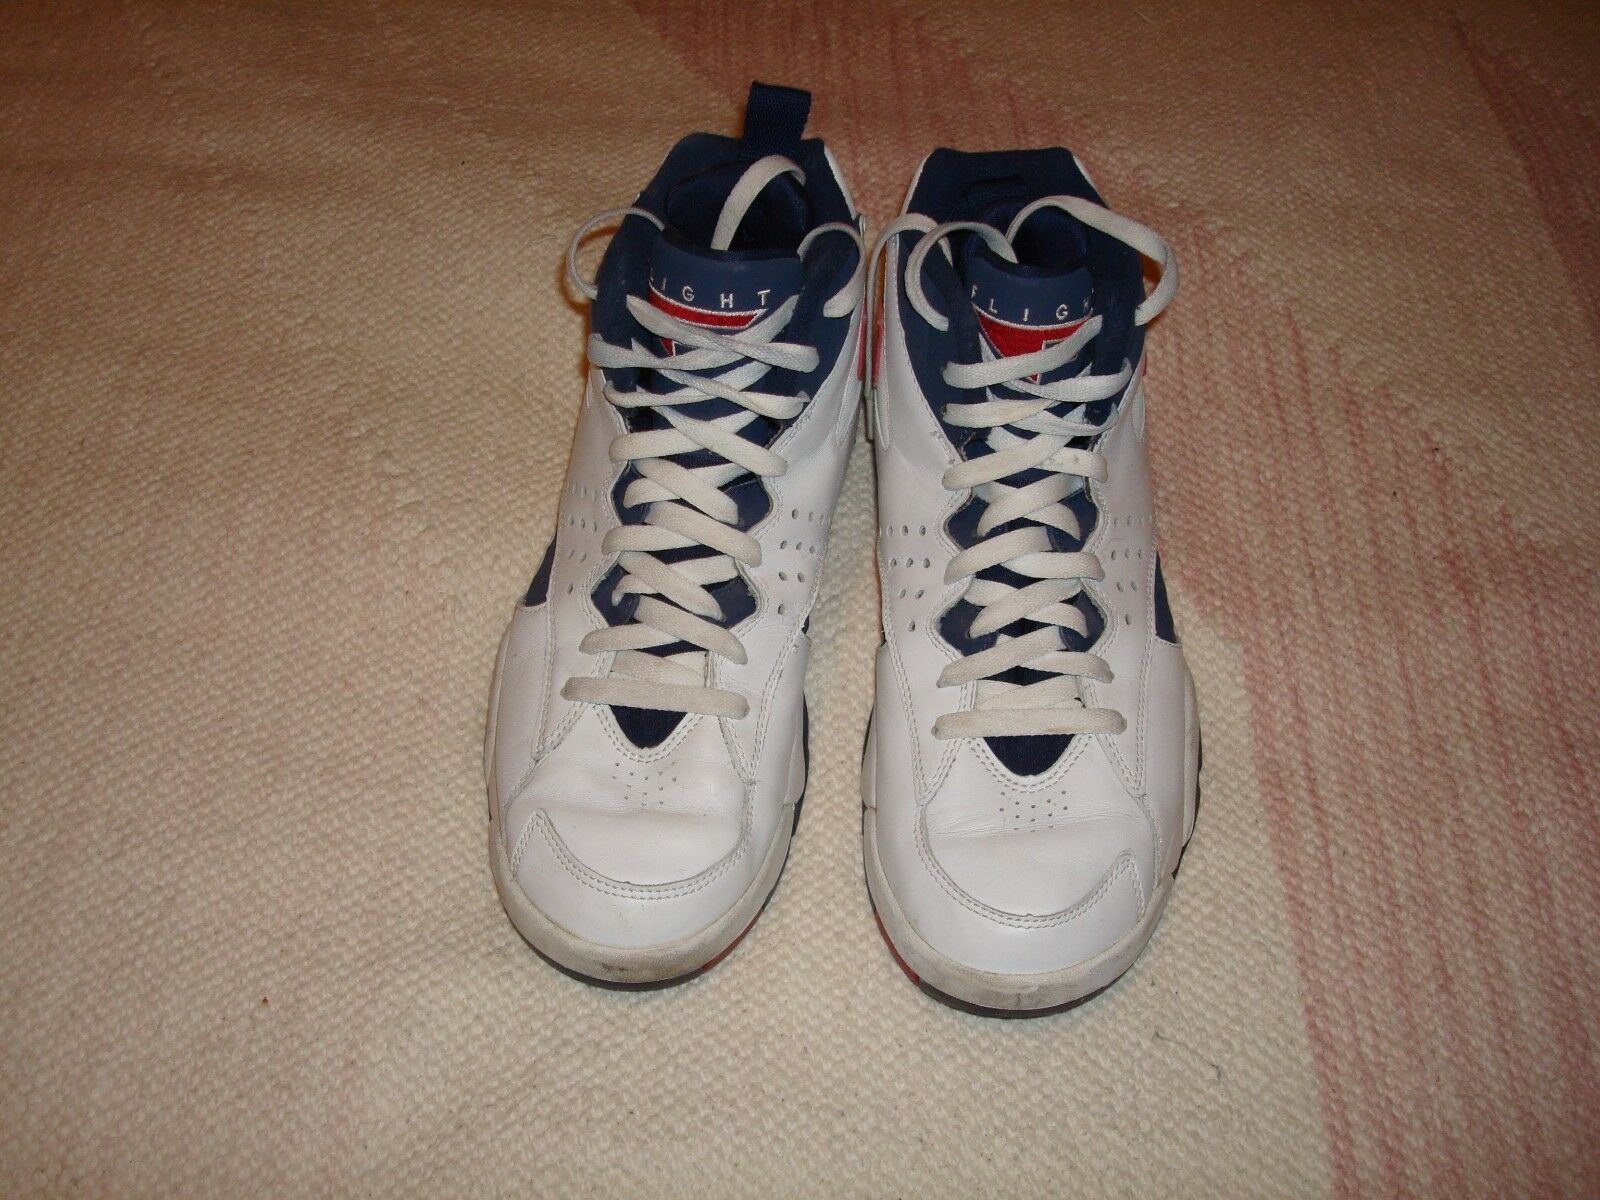 Nike Retro Air Maestro Basketball Shoes, Comfortable